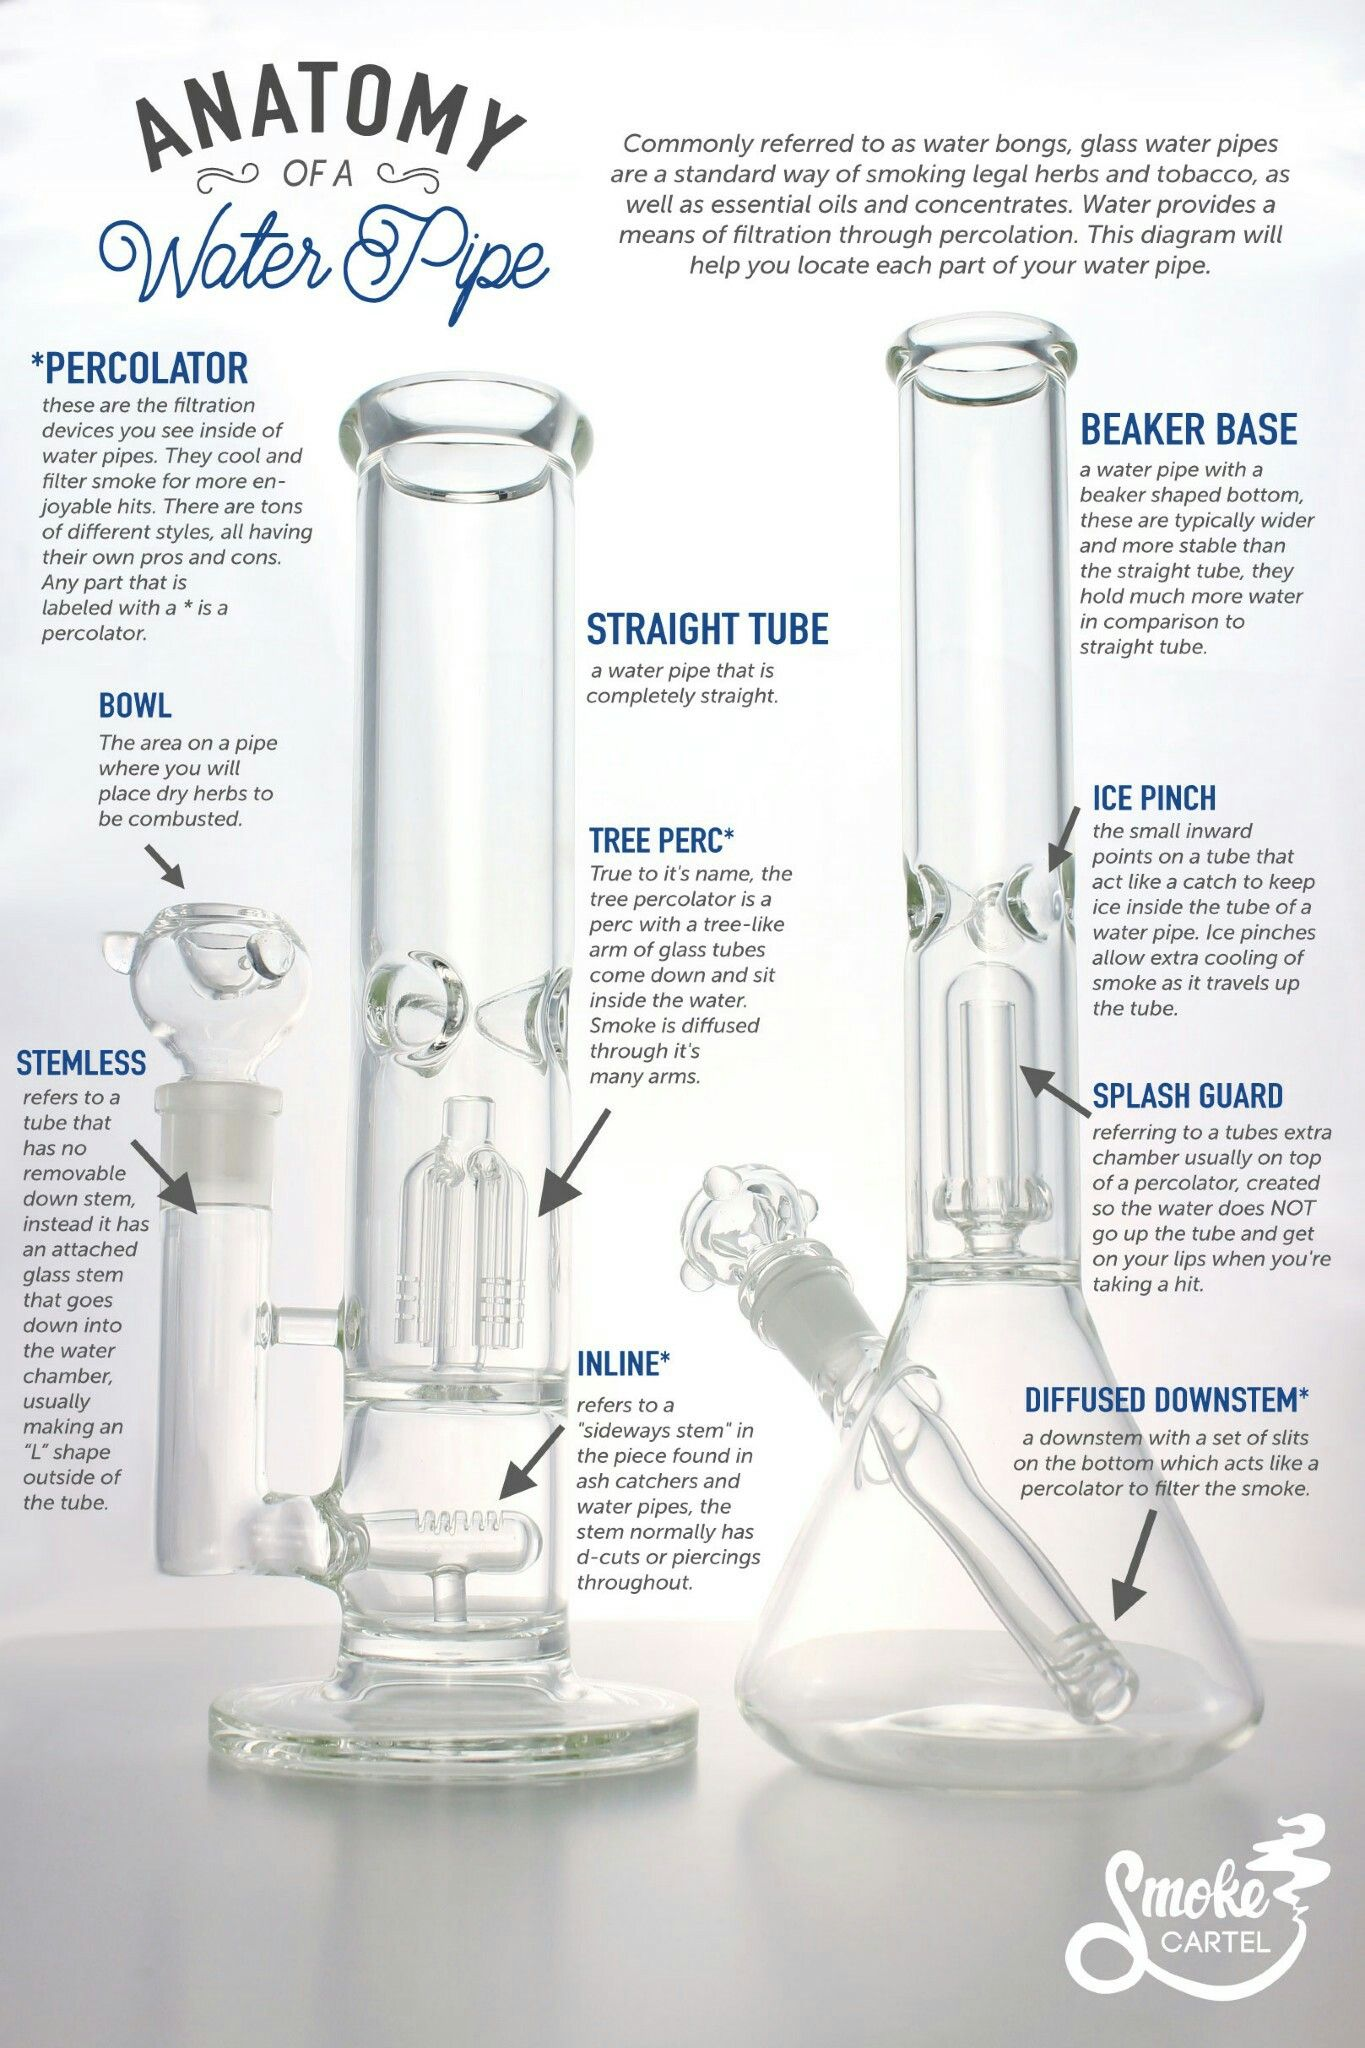 Anatomy of a Water Pipe | Glass | Pinterest | Water pipes, Glass ...